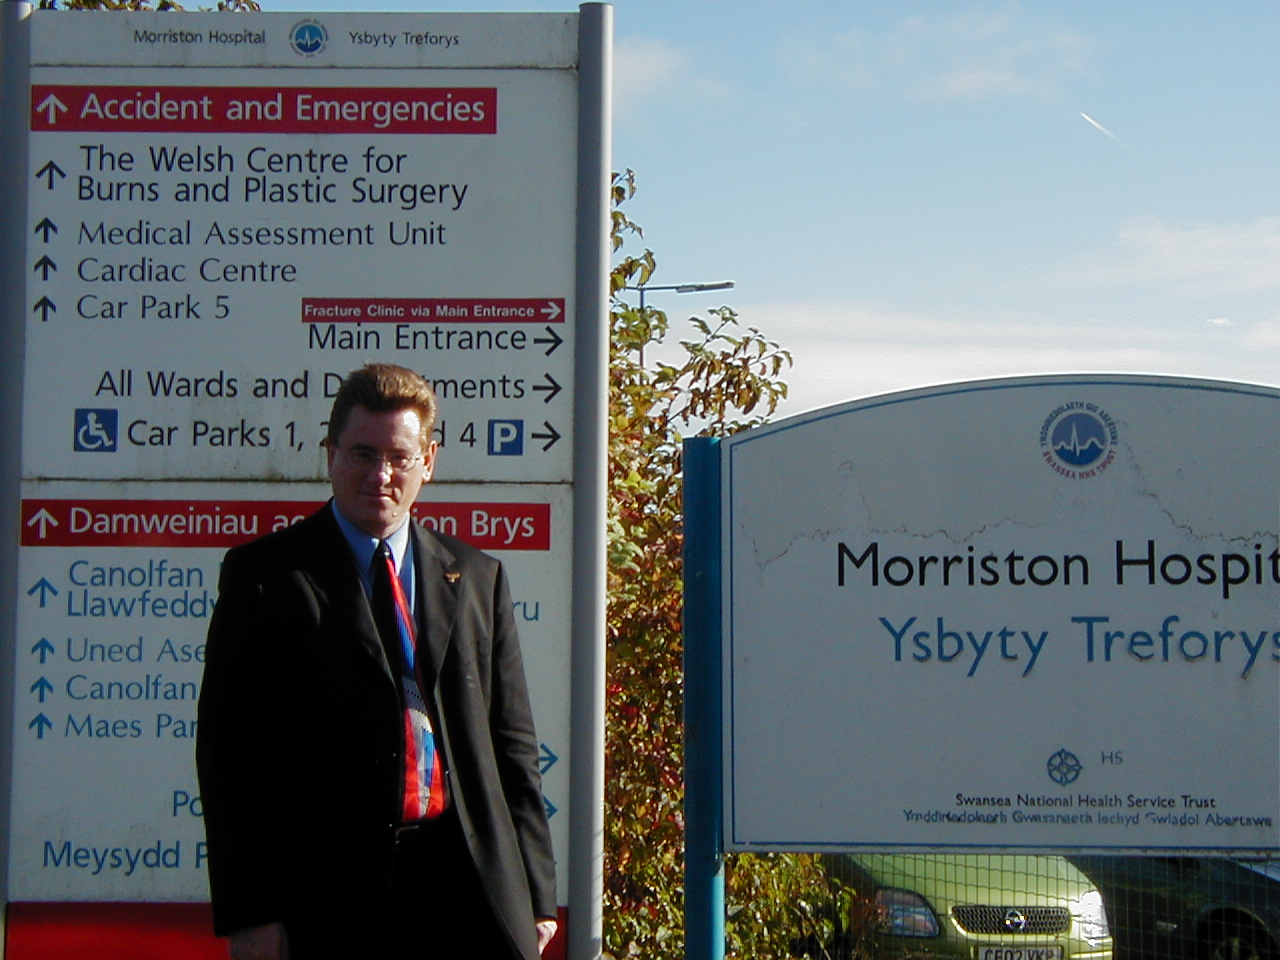 key_Peter_Morriston_Hospital.JPG